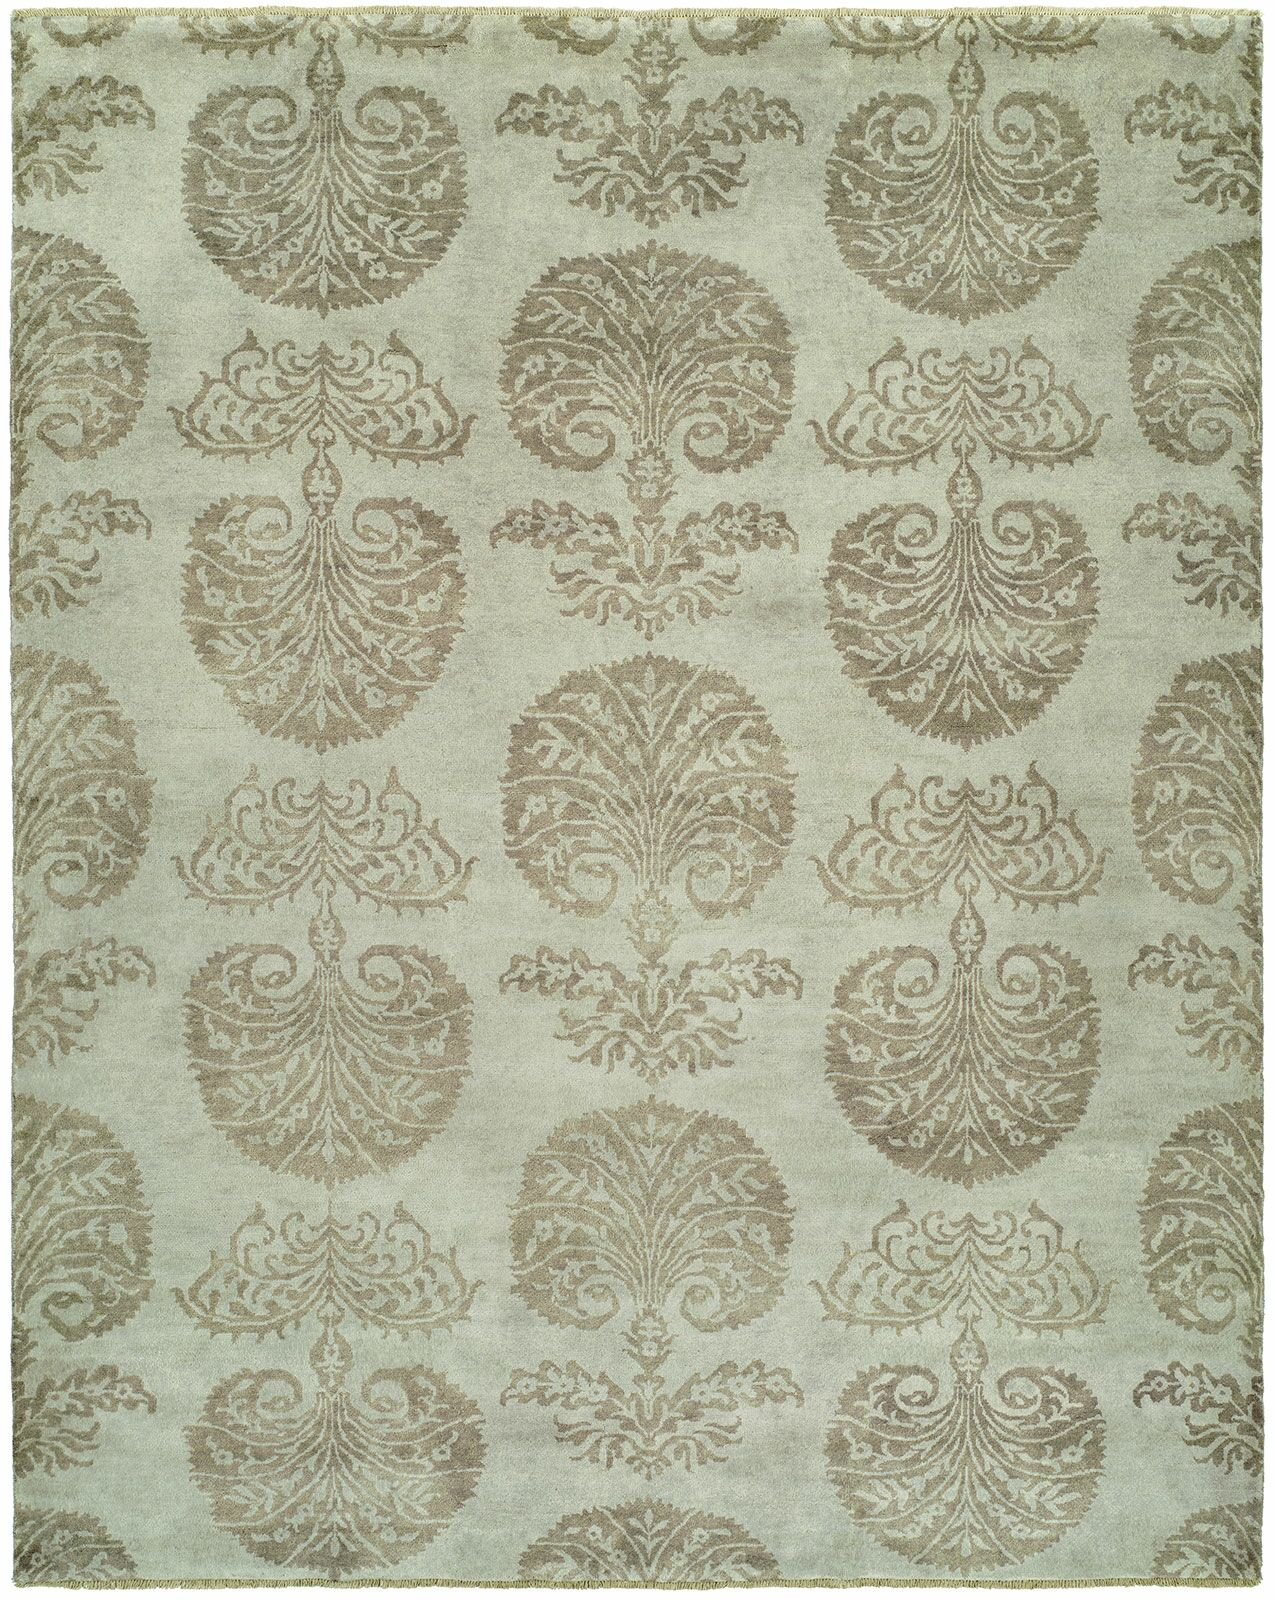 Sébastien Hand-Knotted Wool Ivory Area Rug Rug Size: Runner 2'6